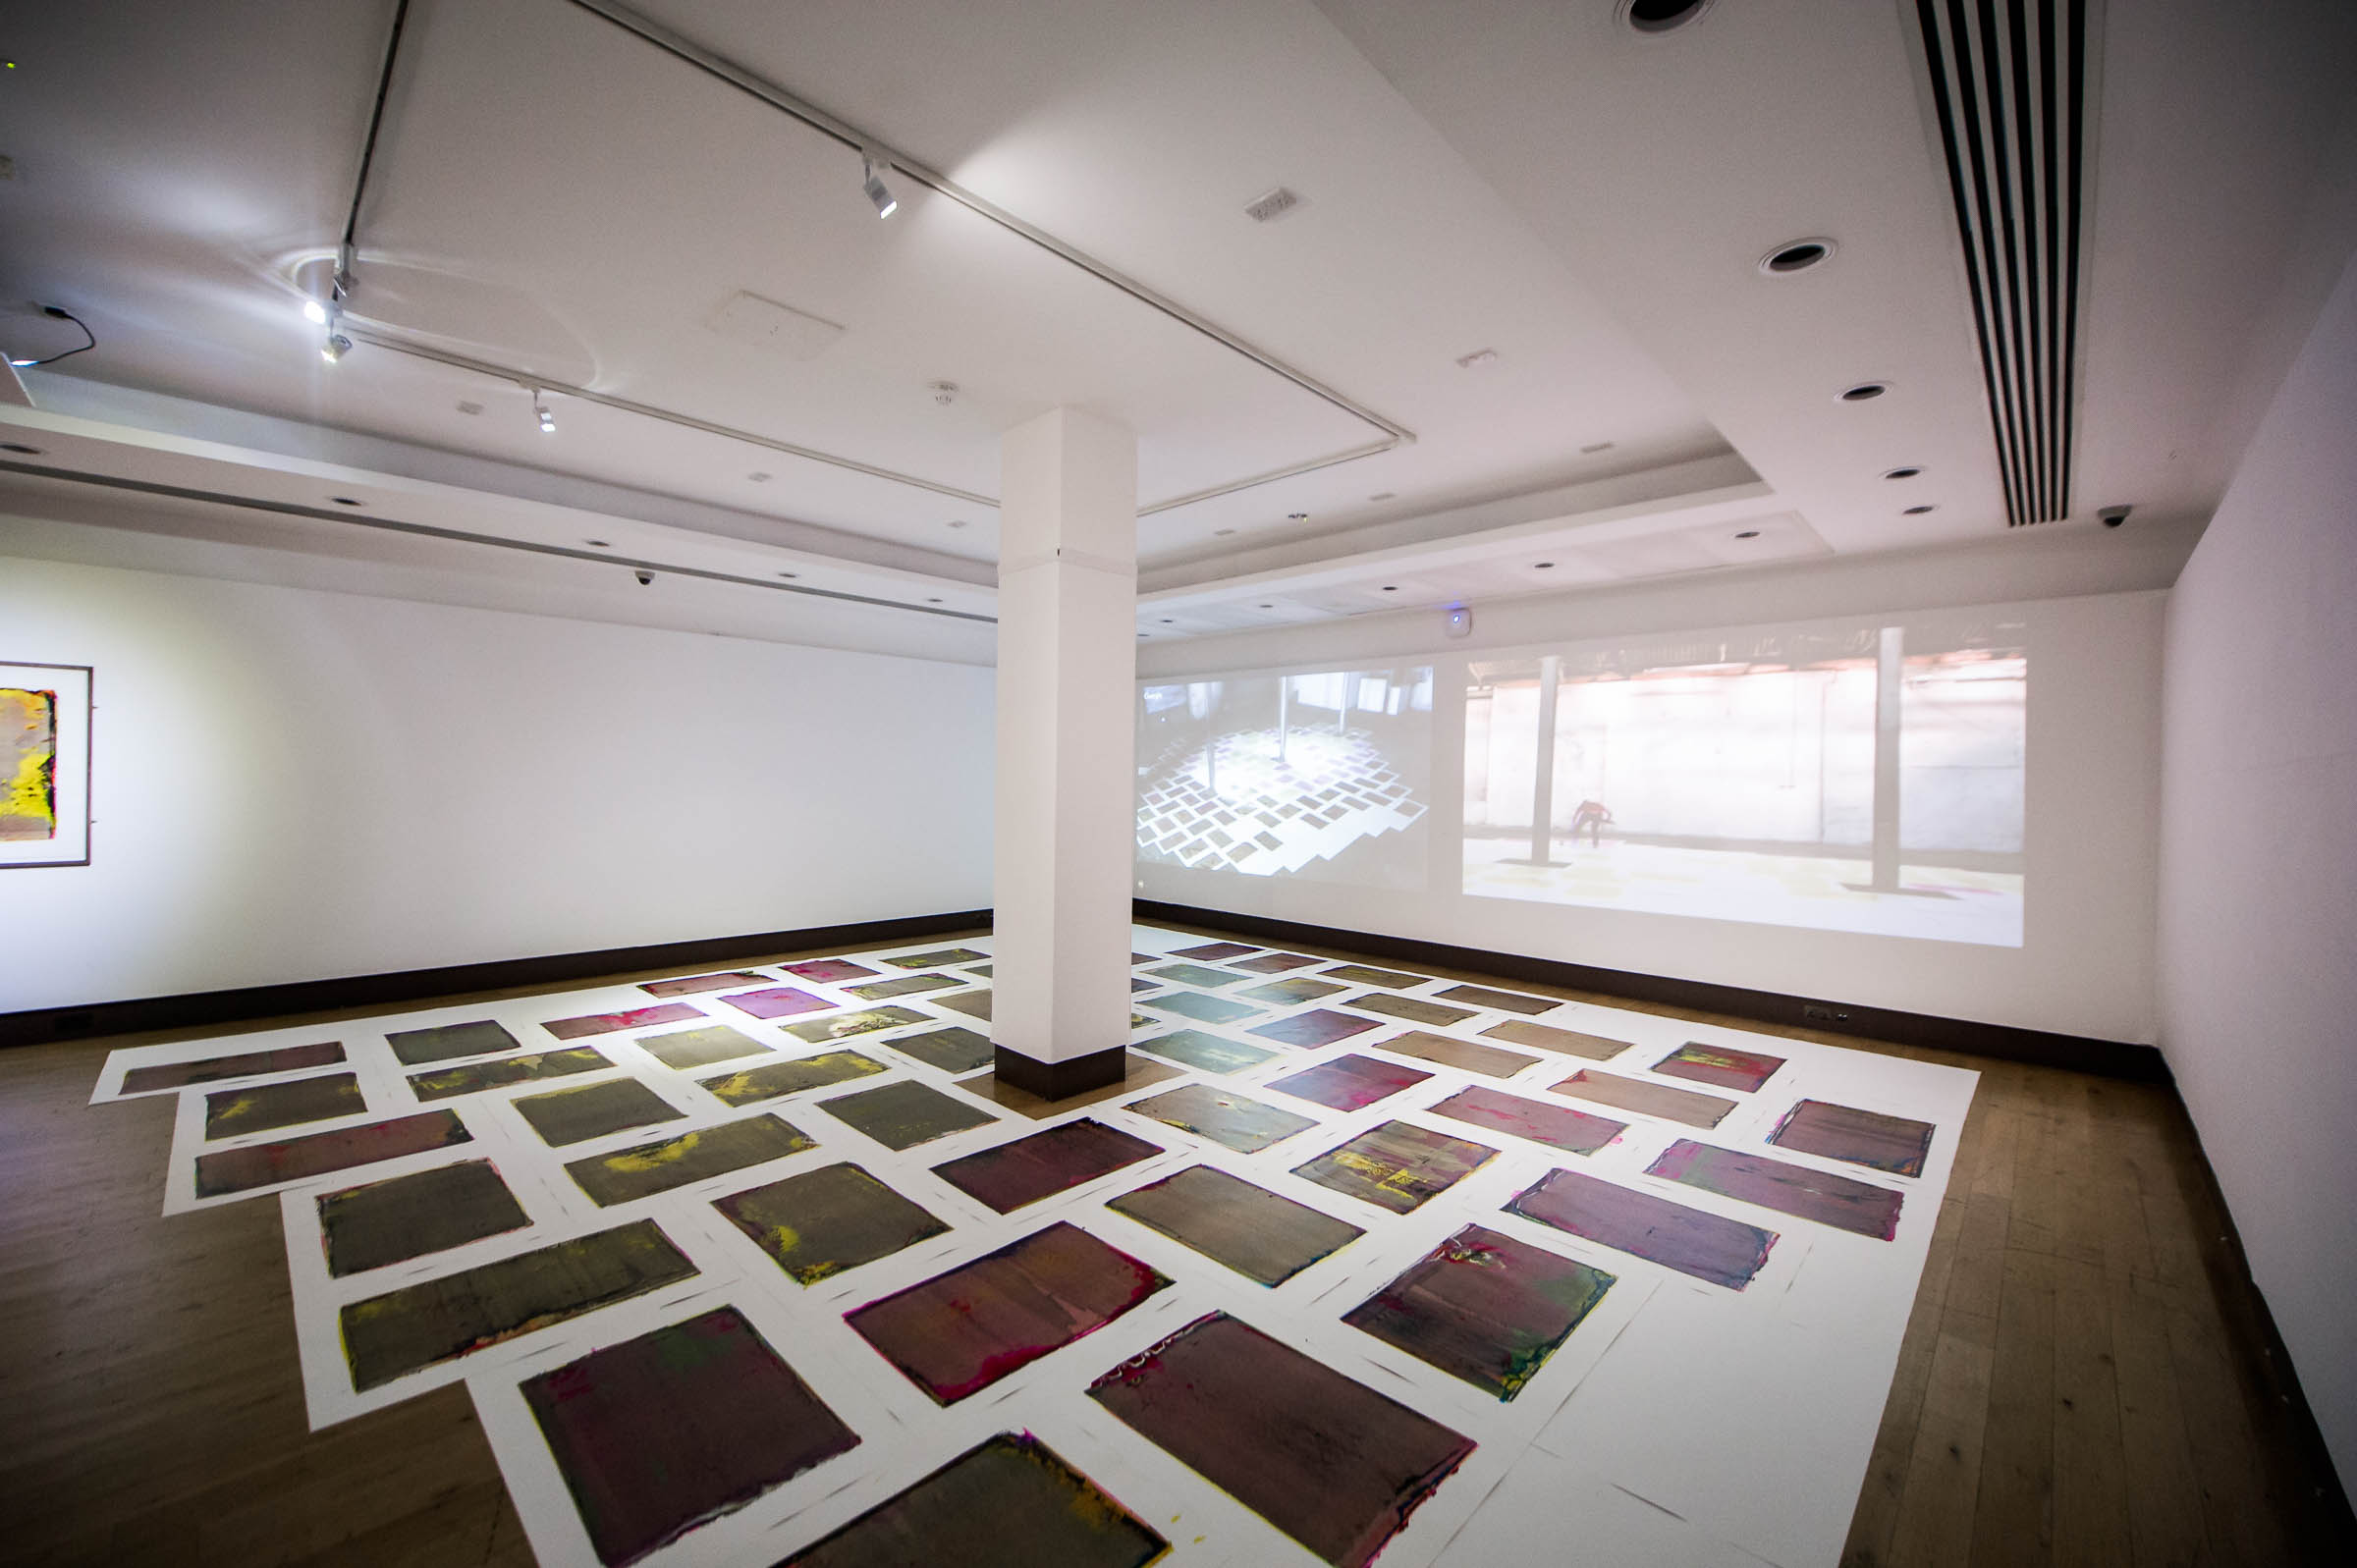 Performance Publishing: Excelsior Works (2015), Installation view at 'Multiplied', Christies